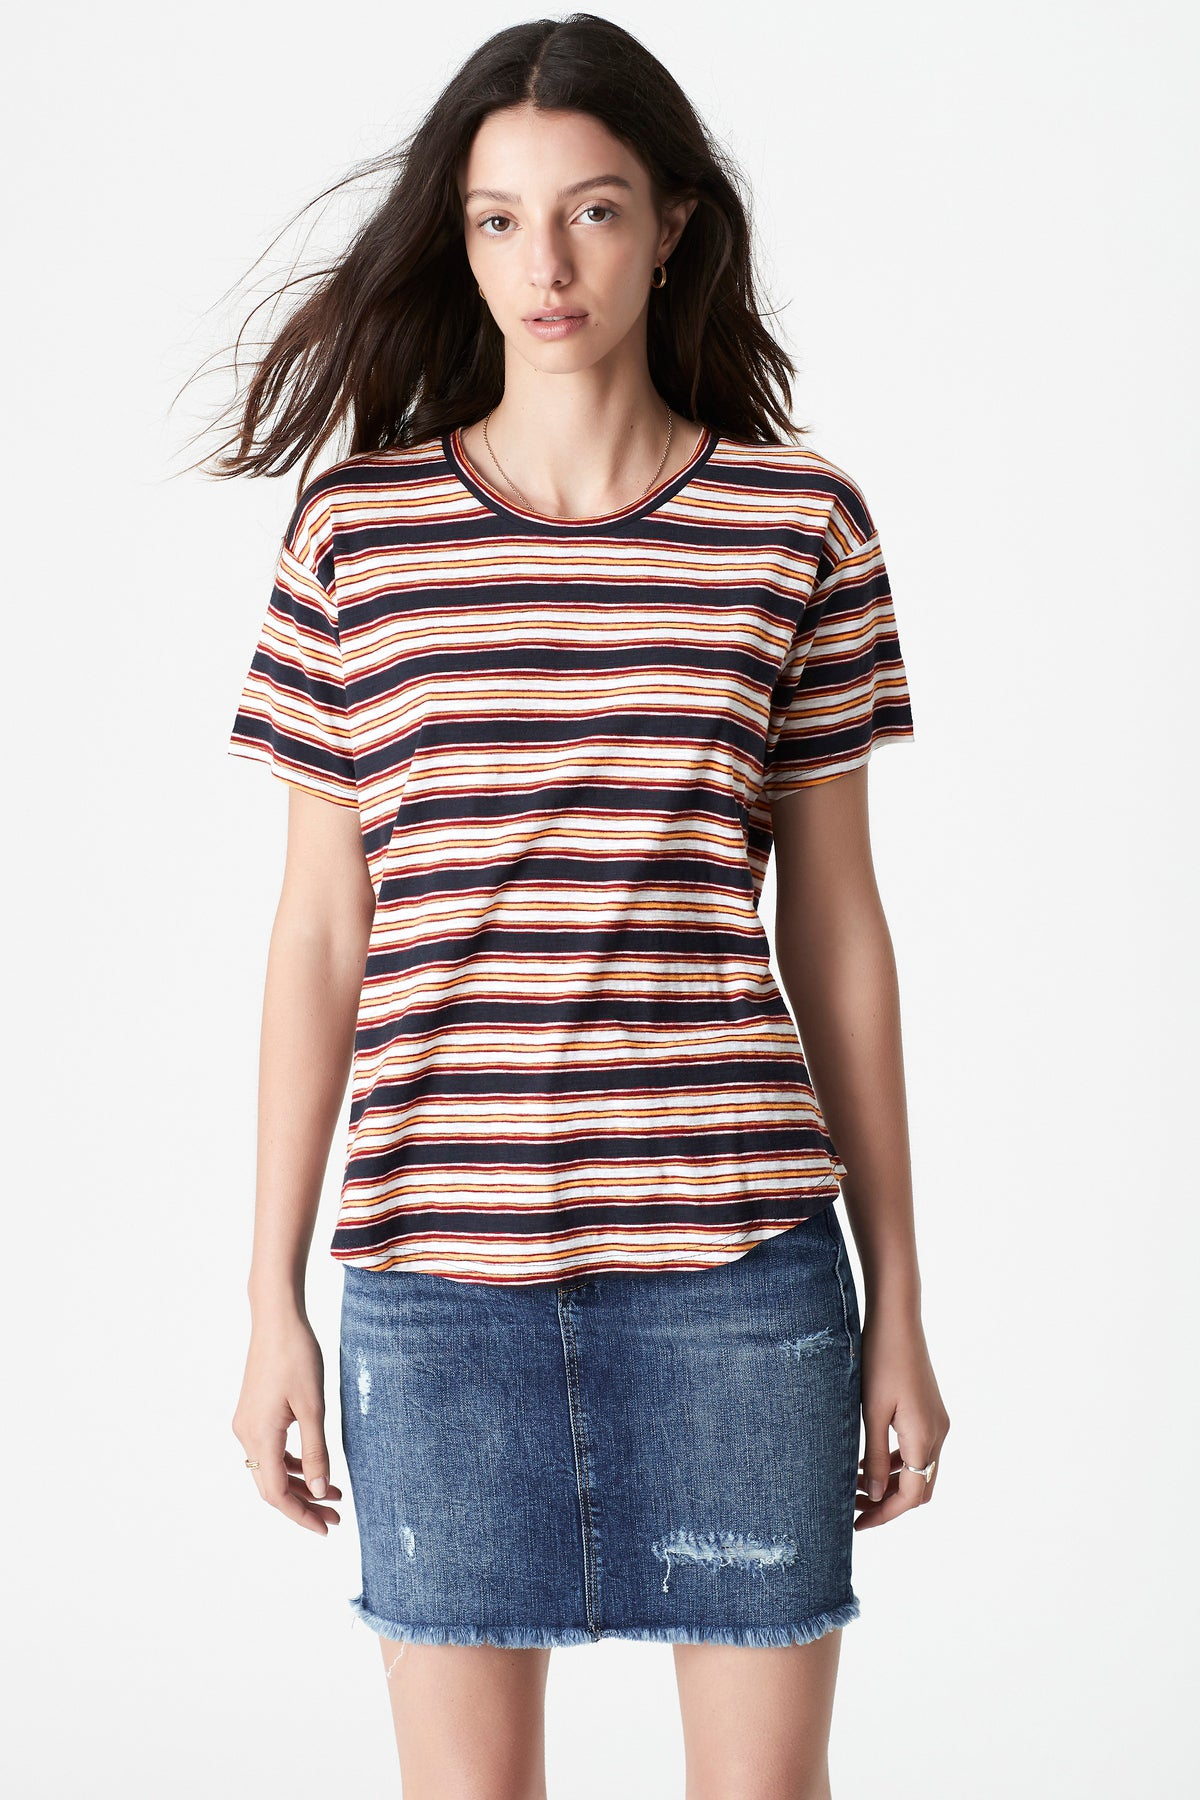 Becky Curved Hem T-Shirt in Mulberry Stripe